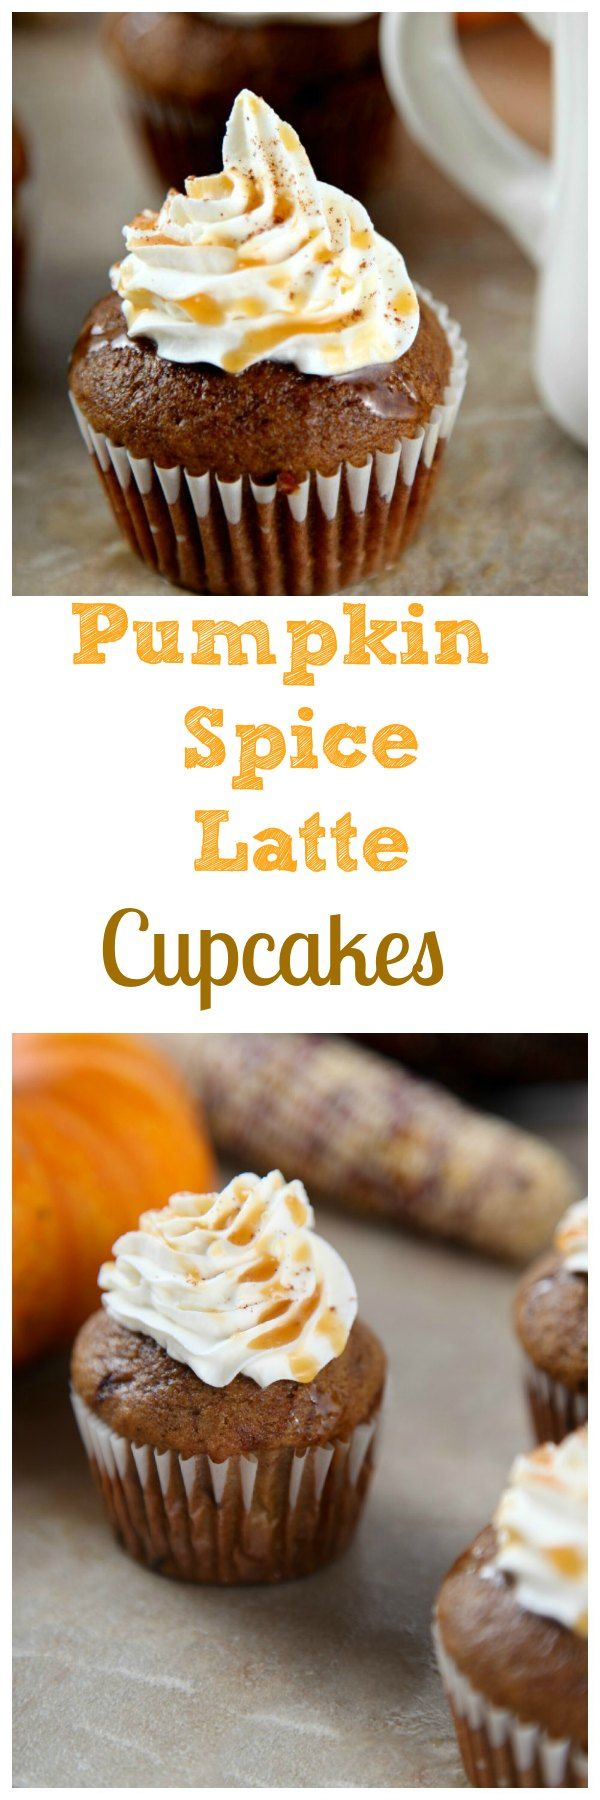 Pumpkin Spice Lattes:Tender pumpkin spice cake topped with sweetened whipped cream and a decadent caramel drizzle.